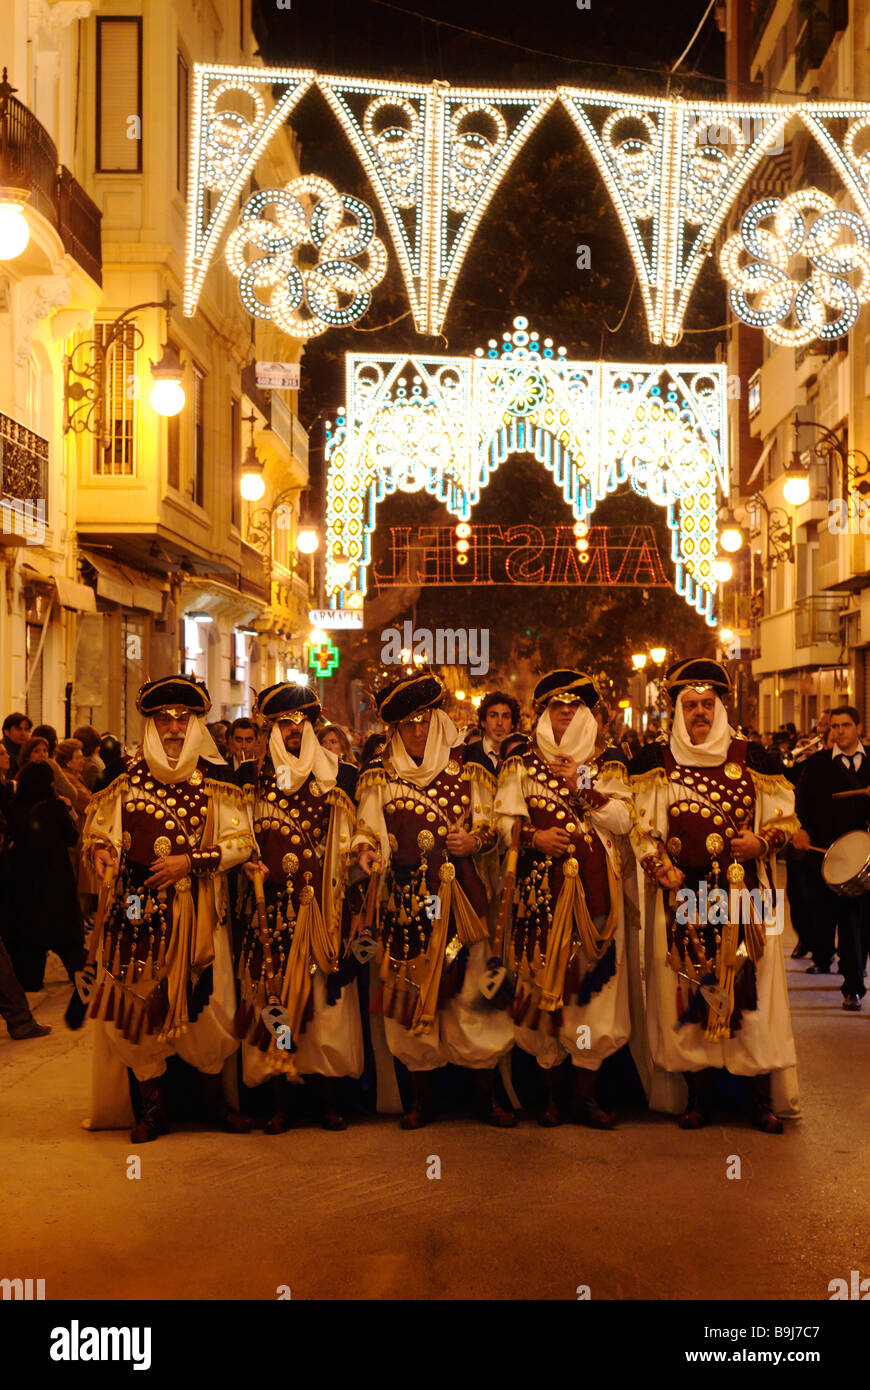 Costume parade of Arab invaders Moros during Las Fallas celebrations in the streets of Valencia Spain - Stock Image